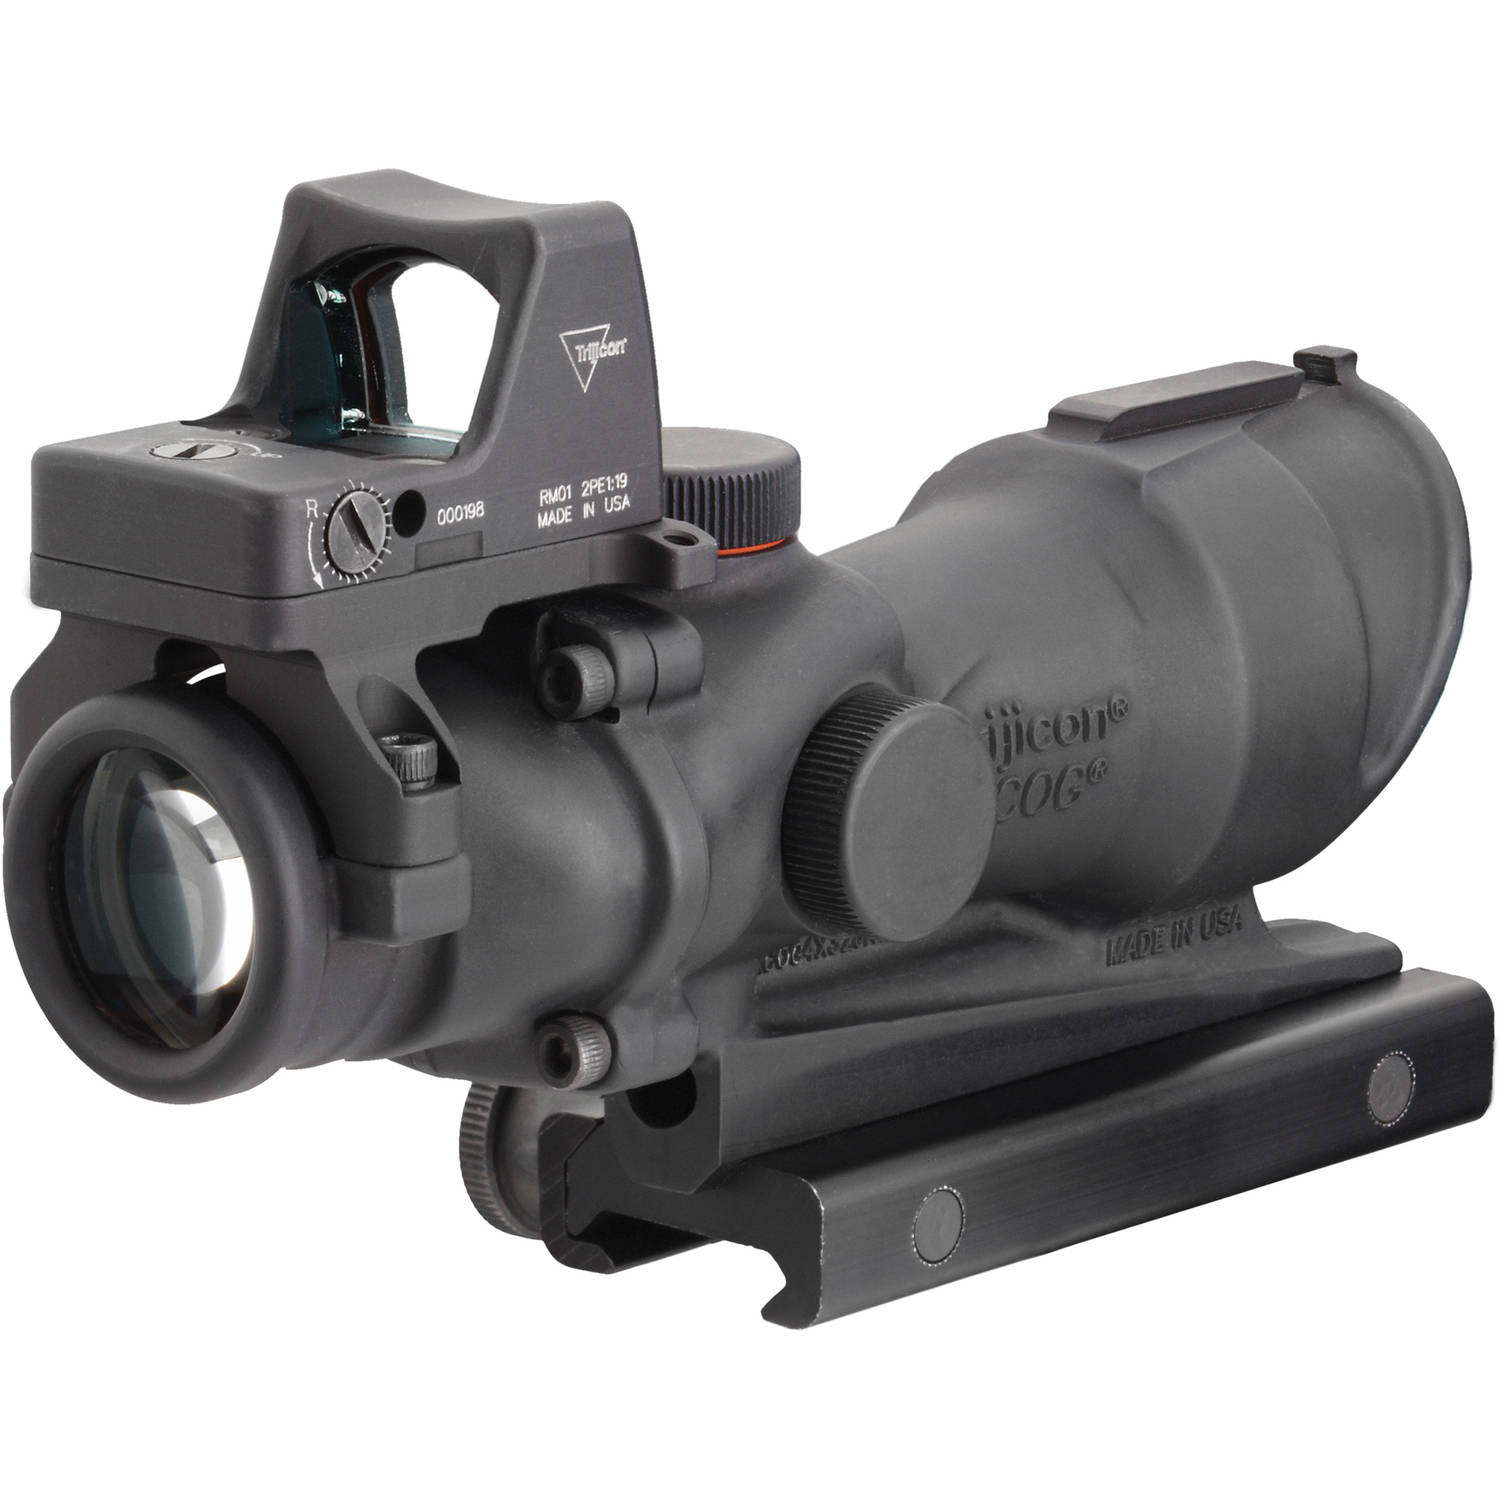 Trijicon ACOG Rifle Scope, 4X32, Amber Crosshair .223 Reticle, Includes 4.0 MOA RMR, TA51 Mount, Dust Cover, Matte by Trijicon